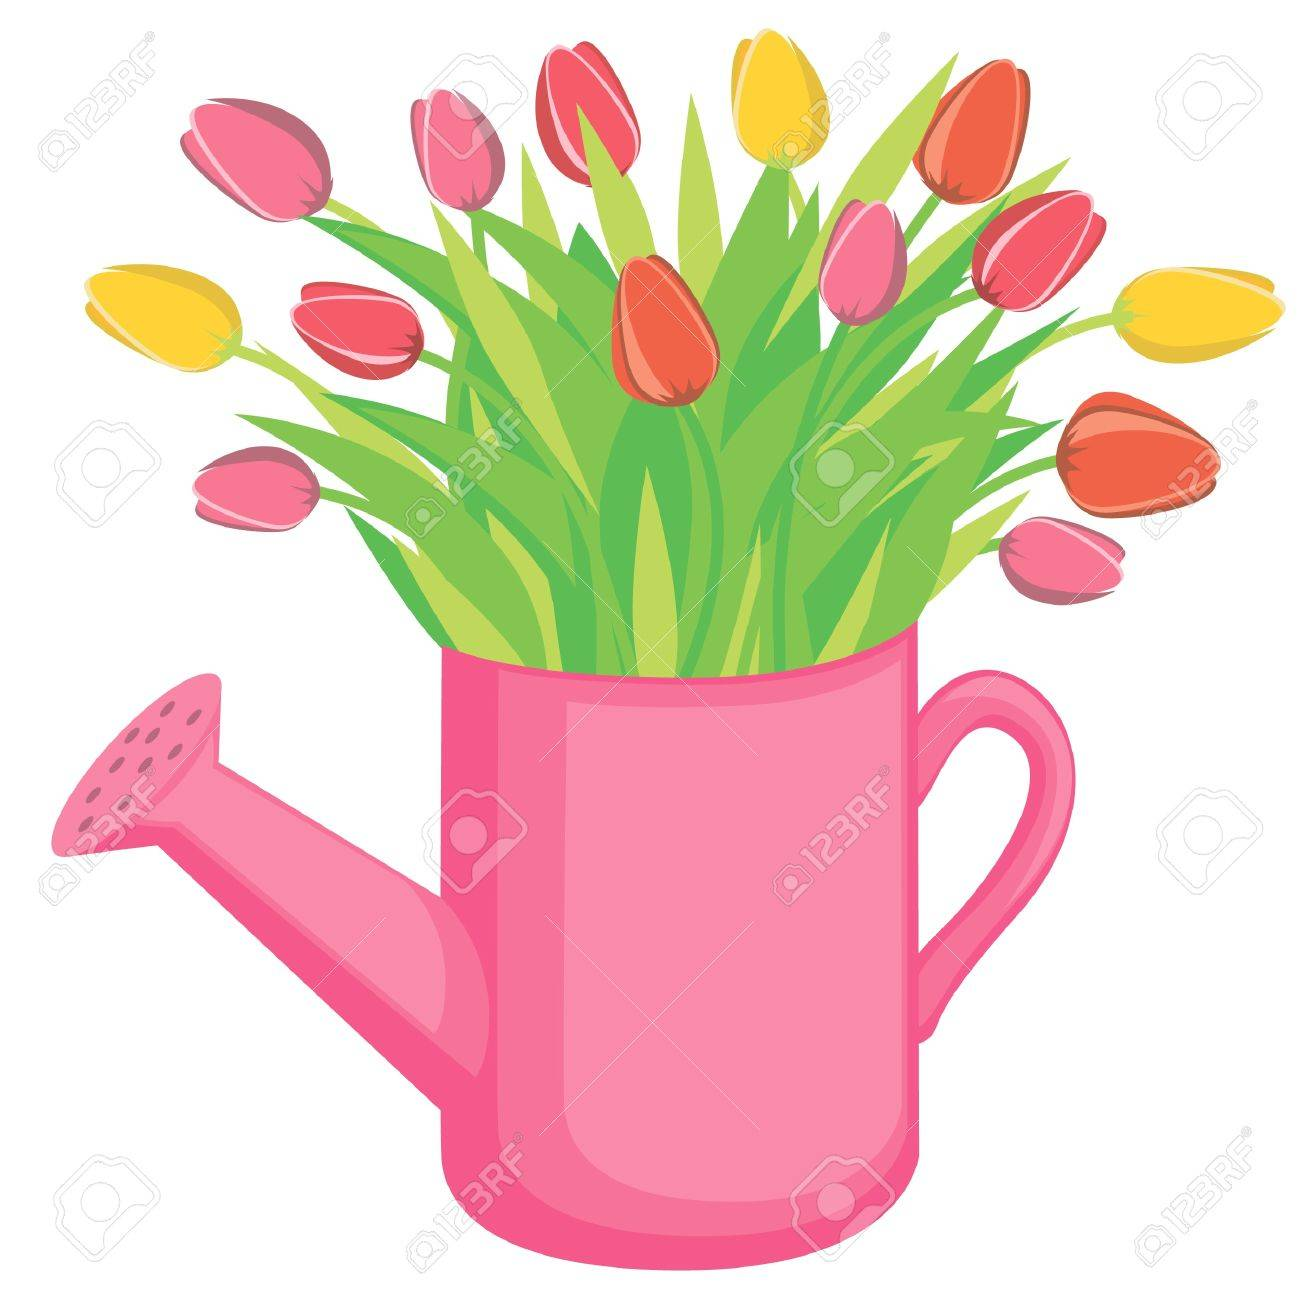 hight resolution of bouquest of tulips flowers in the watering can stock vector 9410825